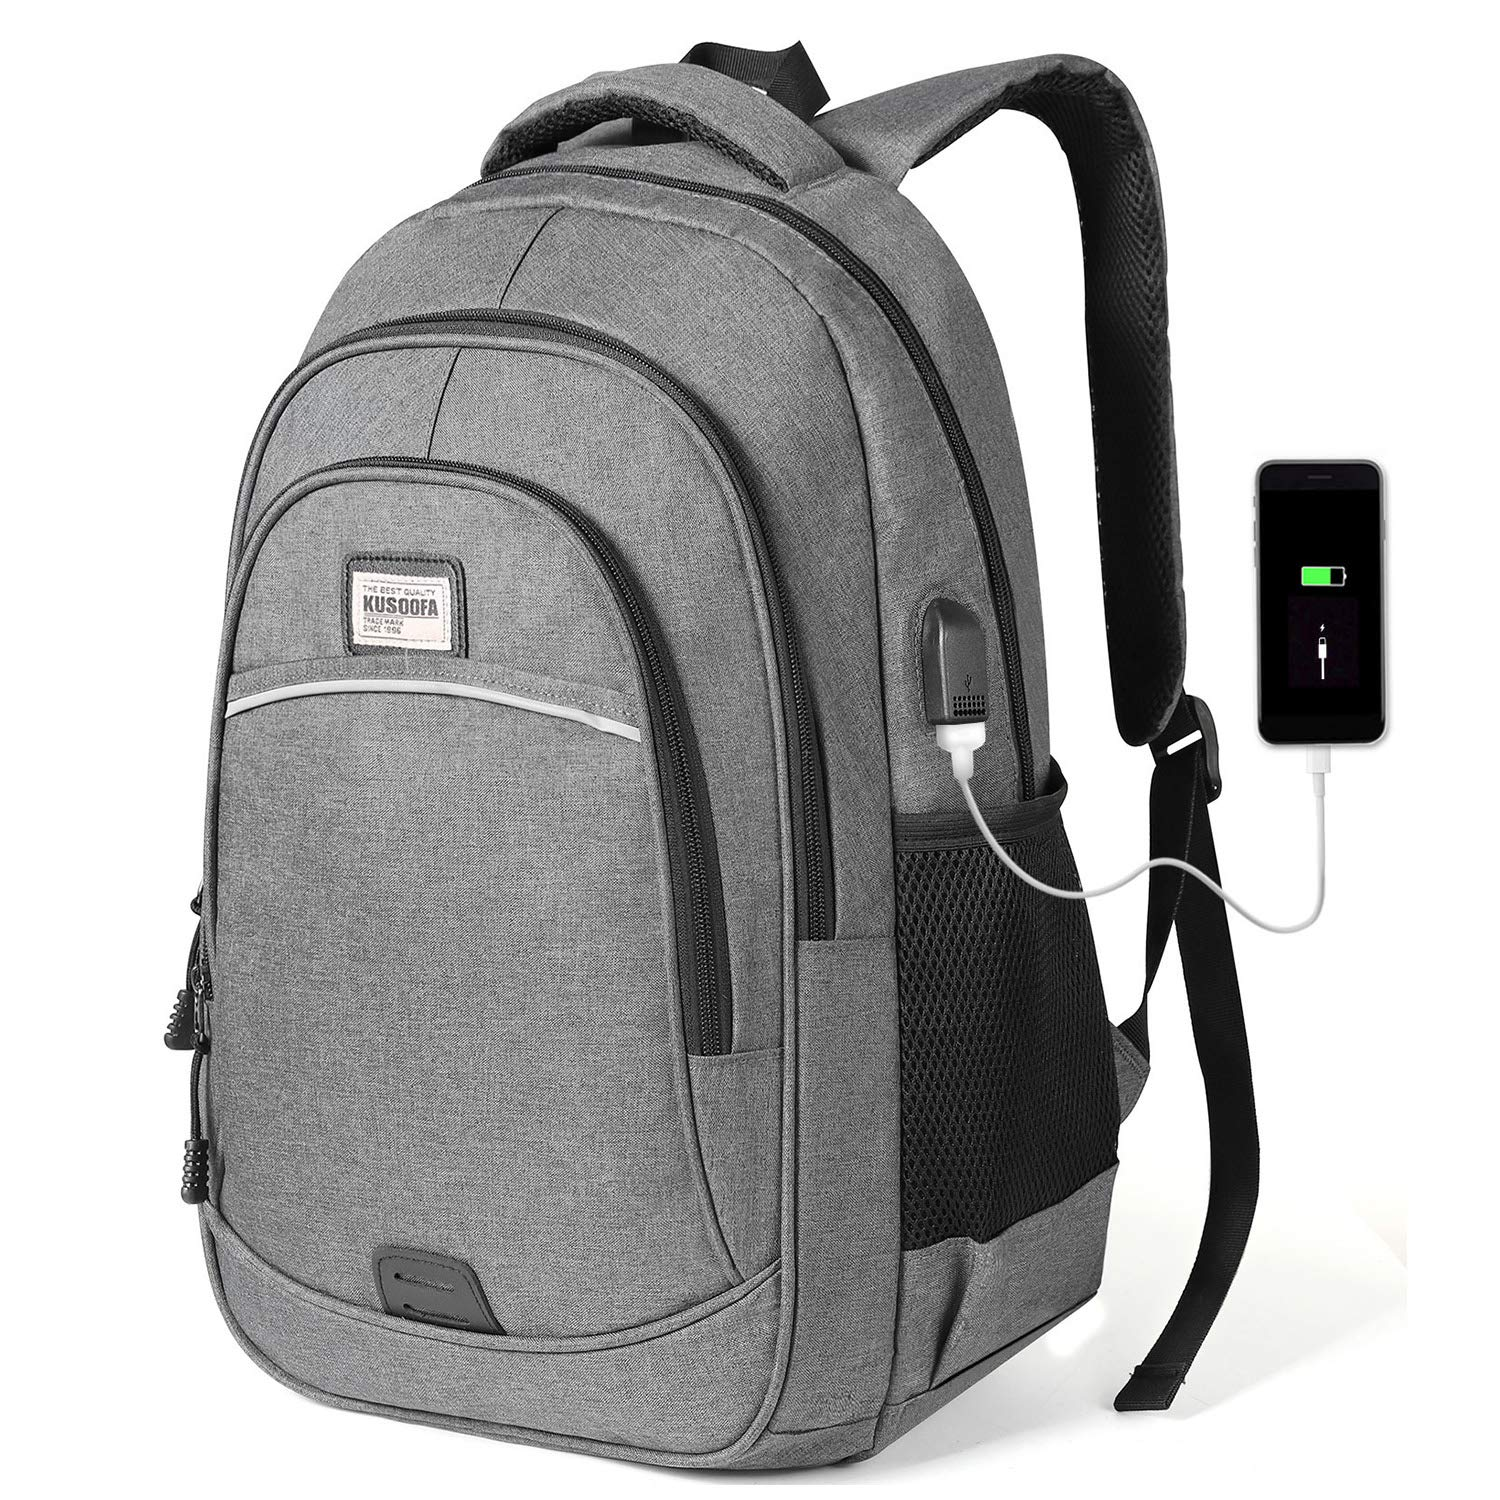 Business Backpack with USB Charging Port Backpacks for Work University Office College Bookbag Fits 15.6 Inch Laptop and Notebook Black KUSOOFA Backpack Laptop